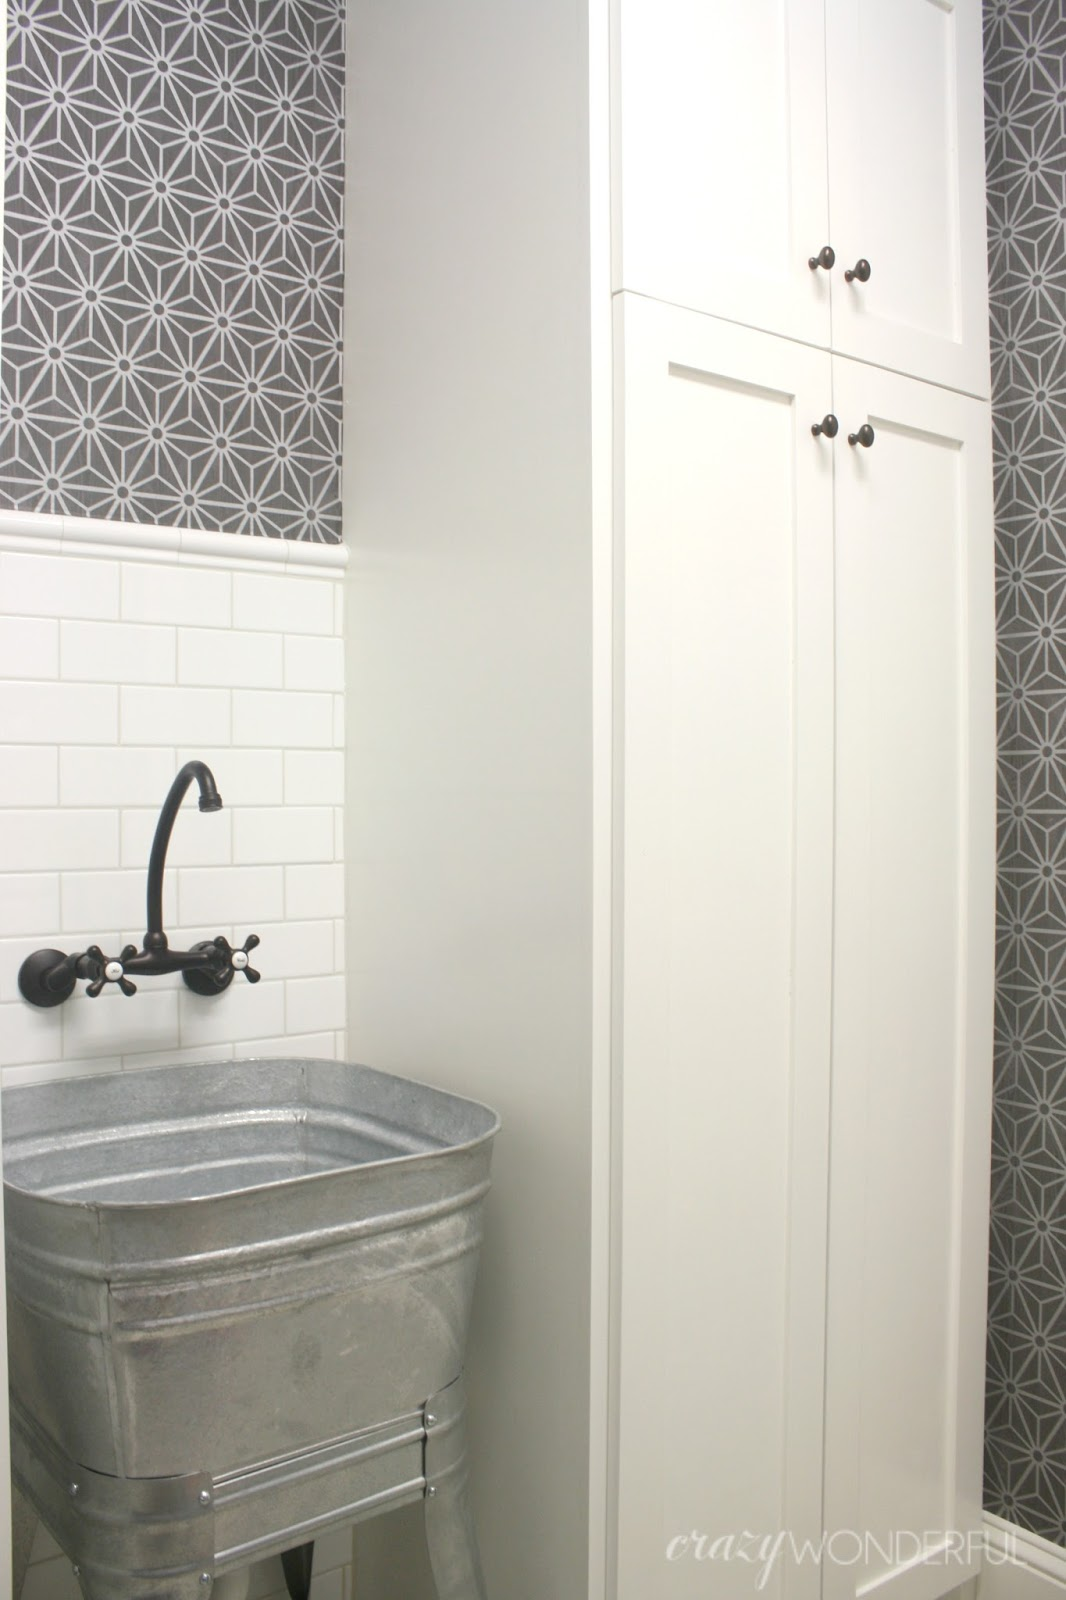 how to fix the wrong grout color - Crazy Wonderful